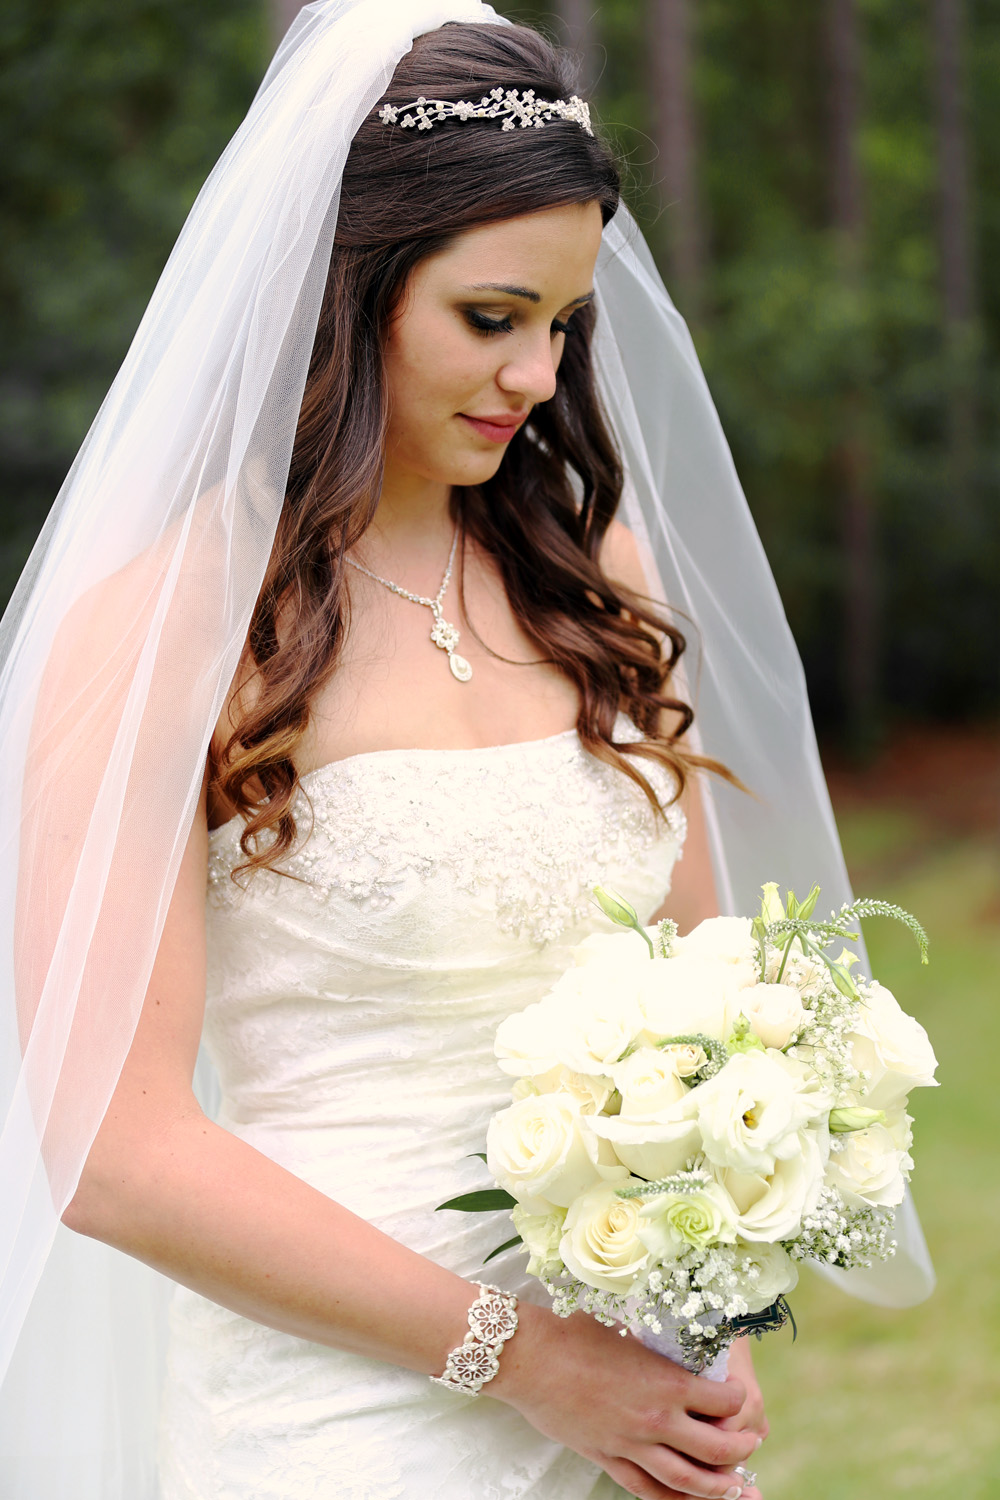 St_James_Plantation_Wedding_Tiffany_Abruzzo_Photography_blog11.jpg